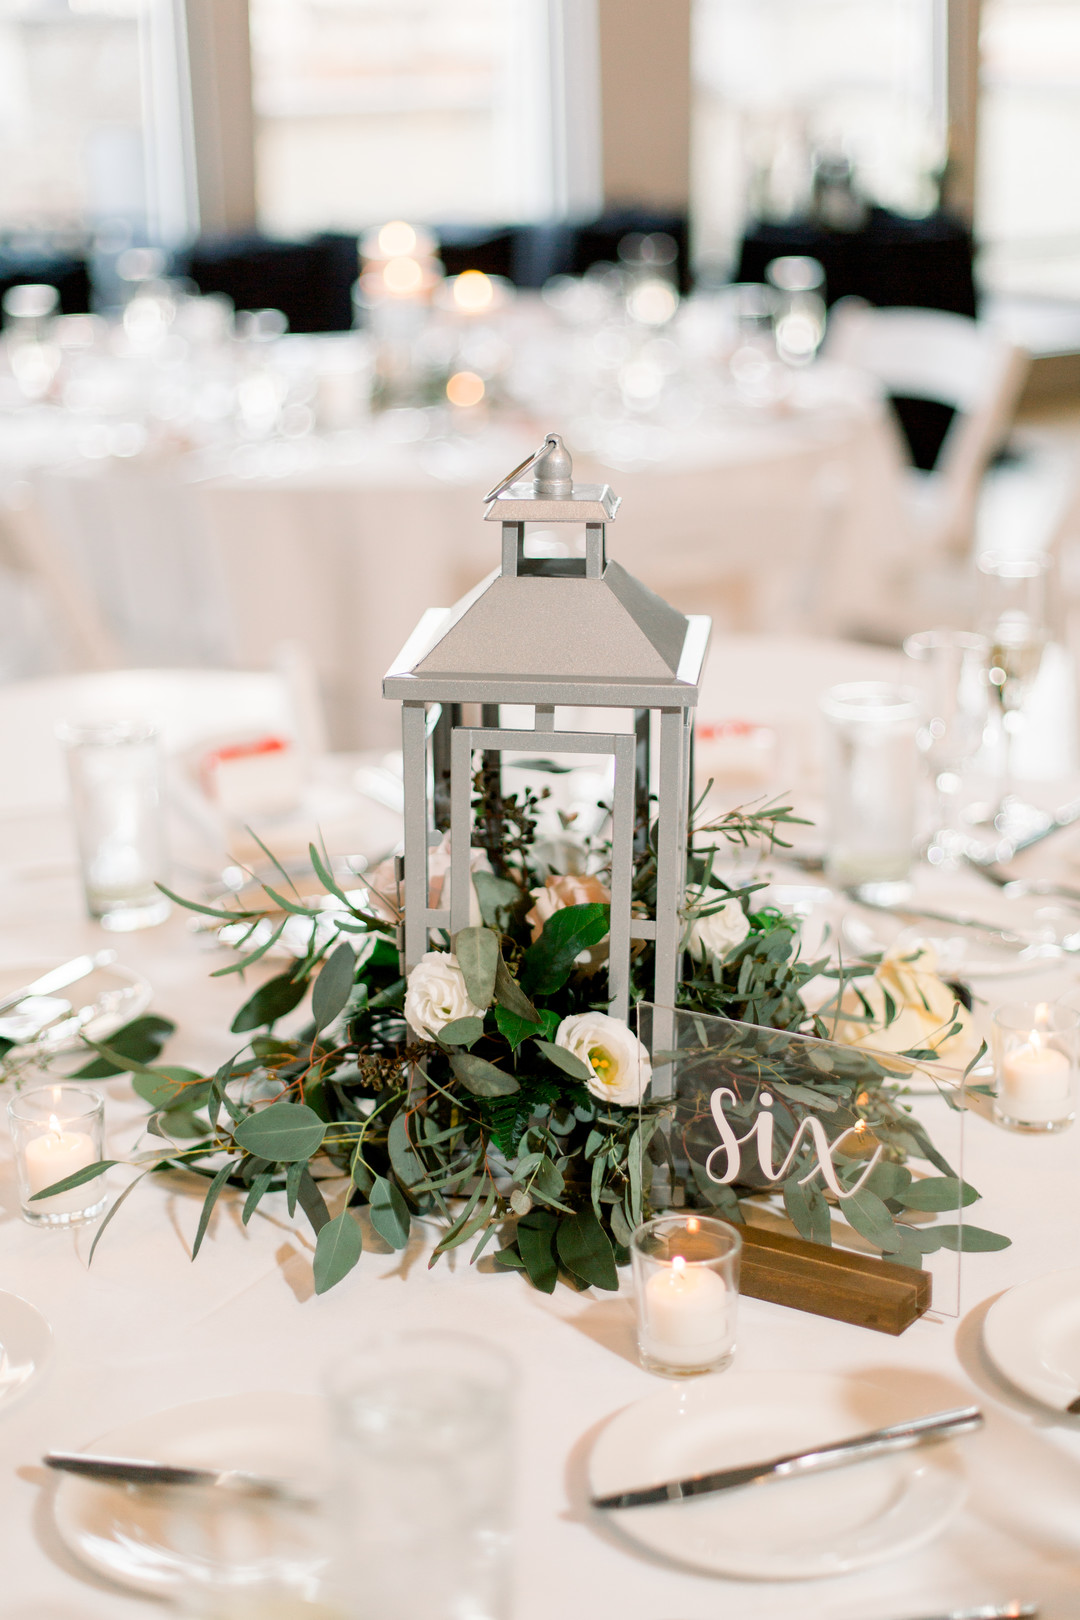 Lantern wedding centerpieces: Spring wedding inspiration captured by Nicole Morisco Photography. Find more spring wedding ideas at CHItheeWED.com!